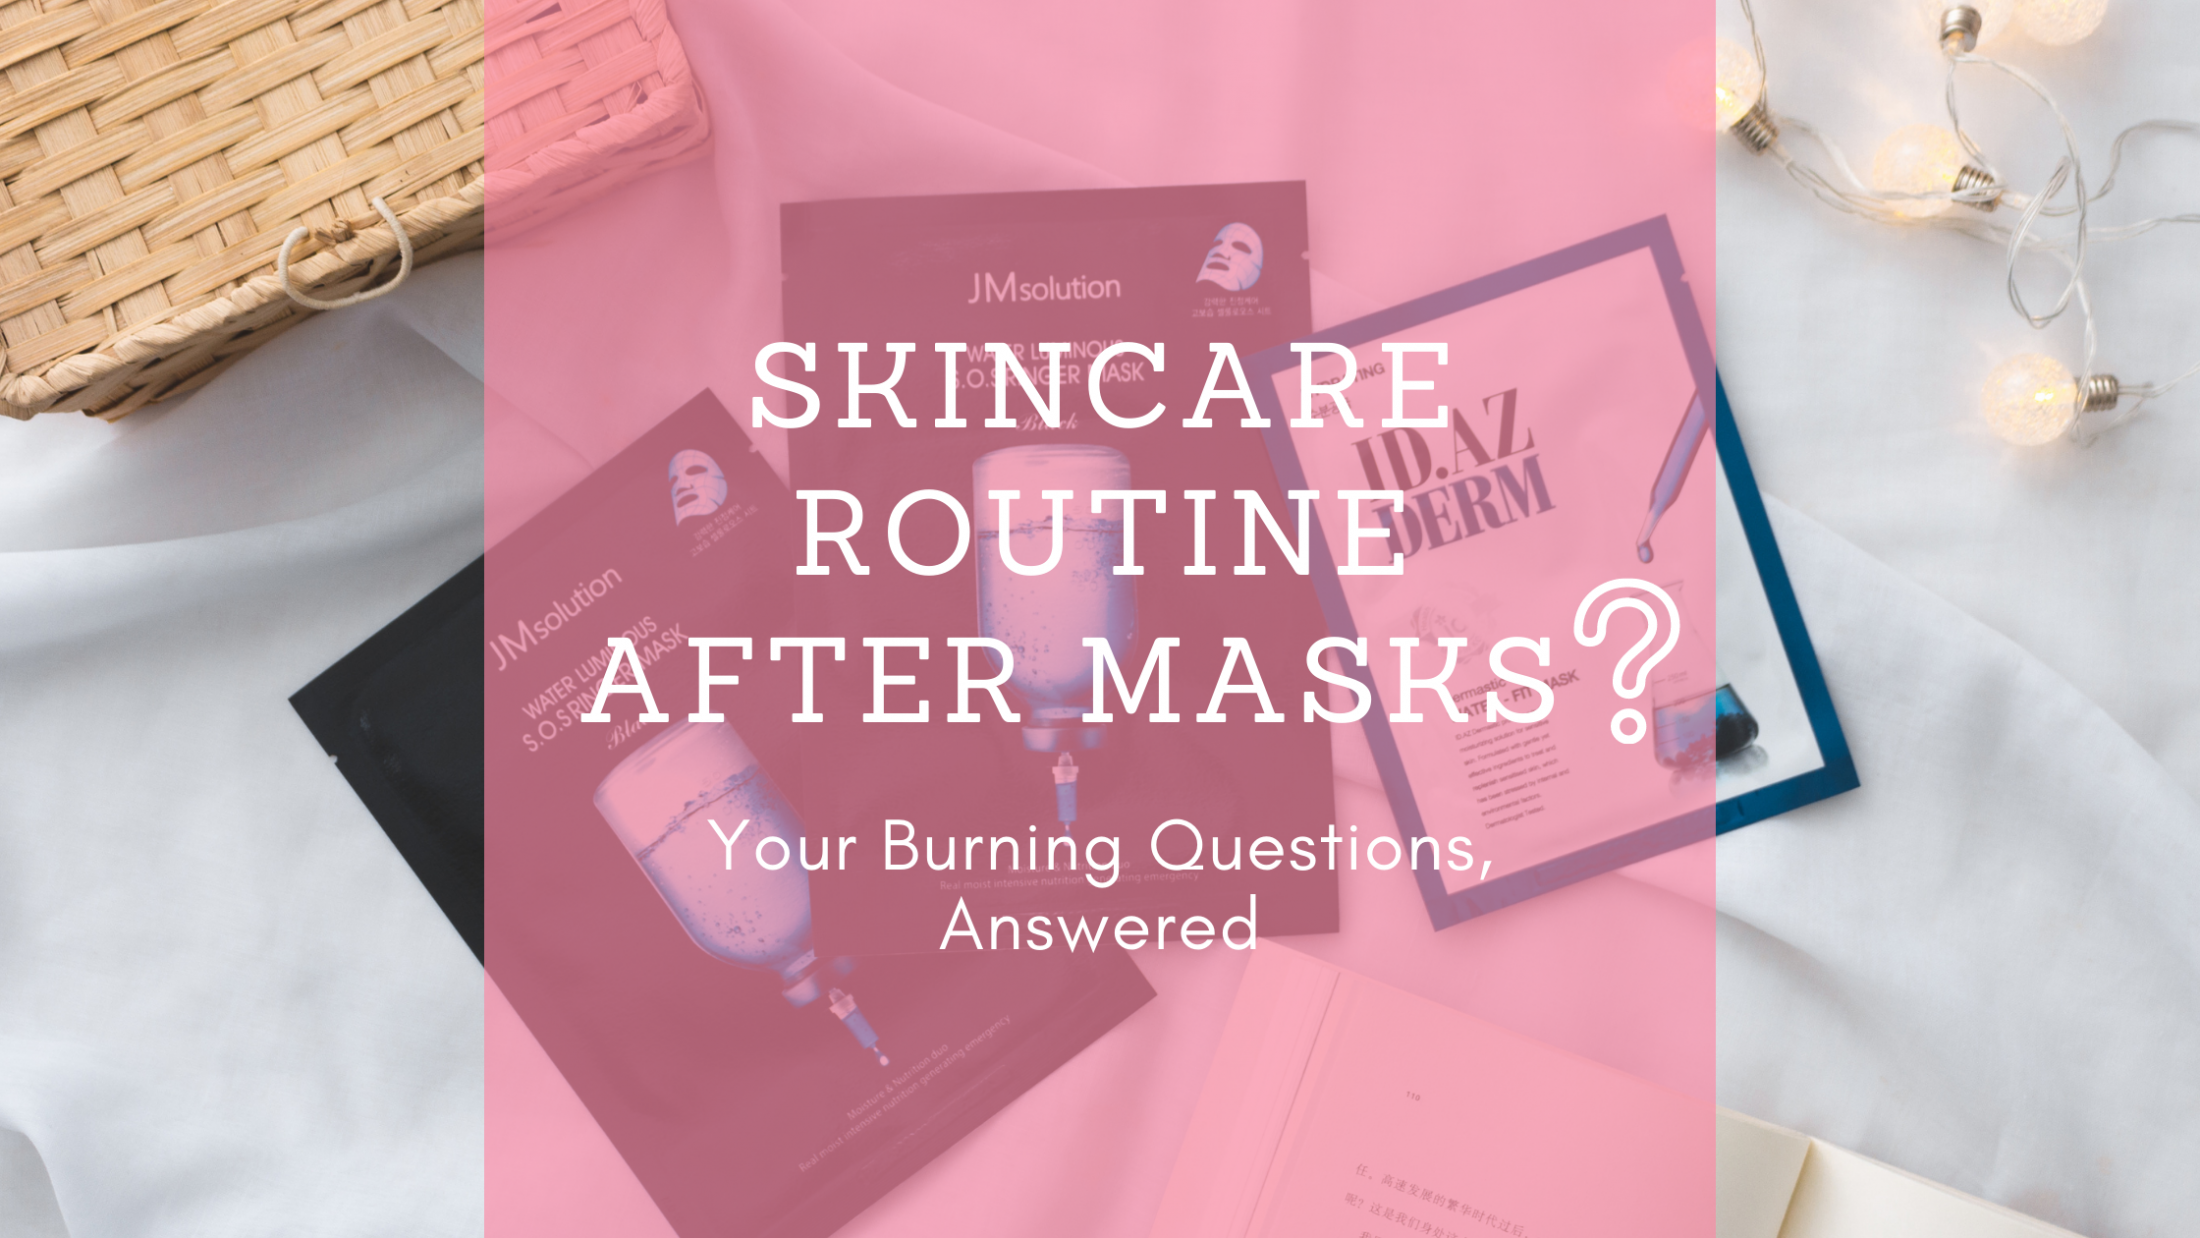 Q&A | What Should I Do After Masks?